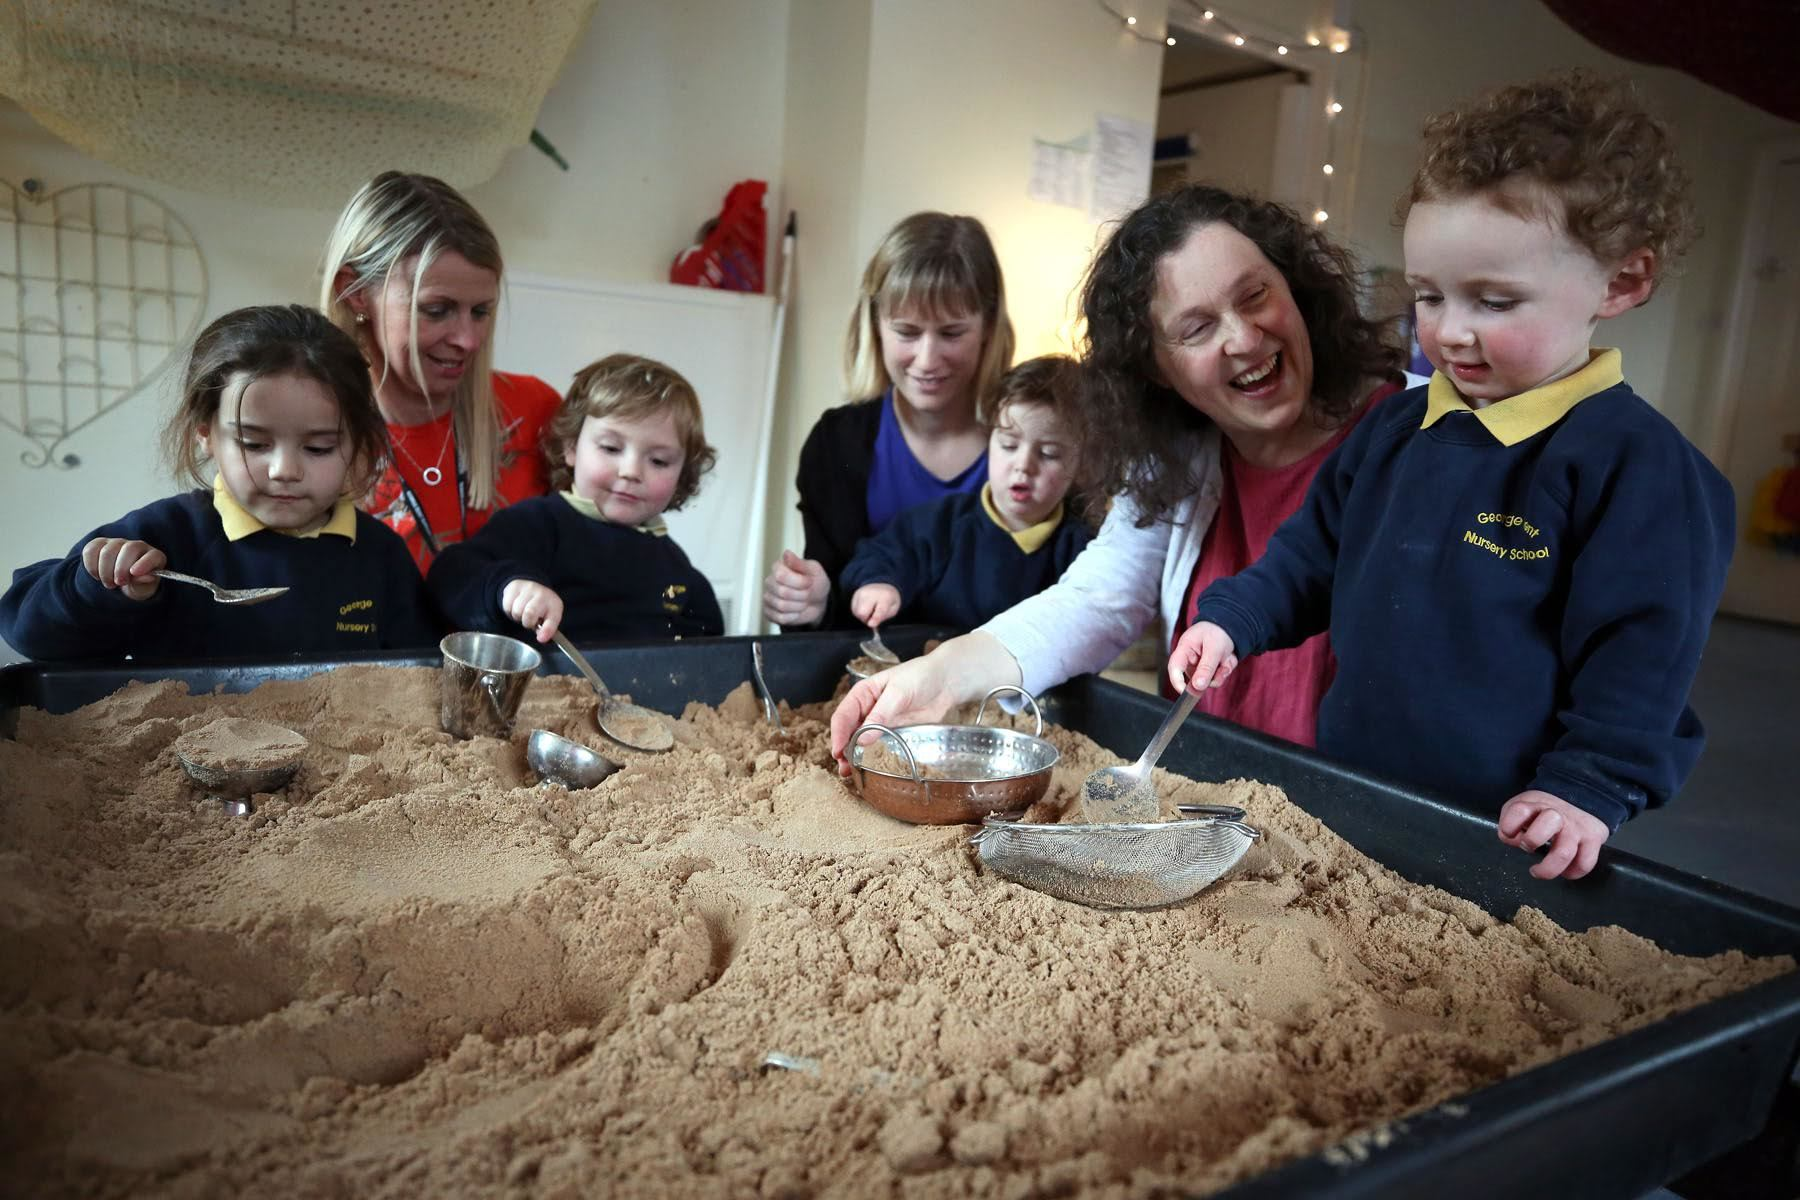 The George Dent Nursery on Elms Road in Darlington has received its seventh outstanding Ofsted report in a row. Playing in the sand are Freya Haymer (three), executive head teacher Helen Dummett, Nathaniel Birtles (three), Orchard Room manager Katie Taylo